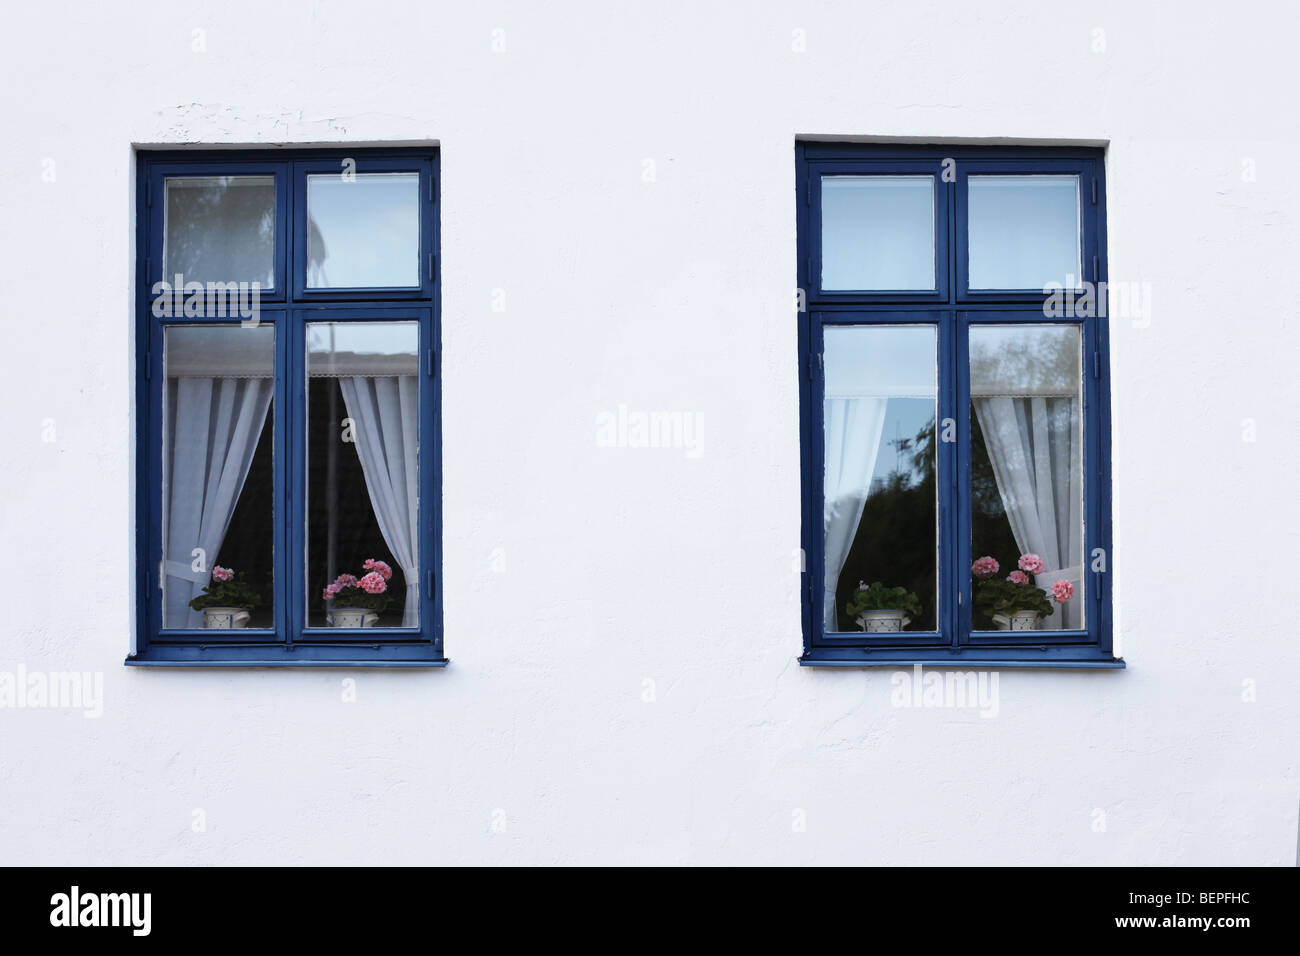 Two identical windows - Stock Image